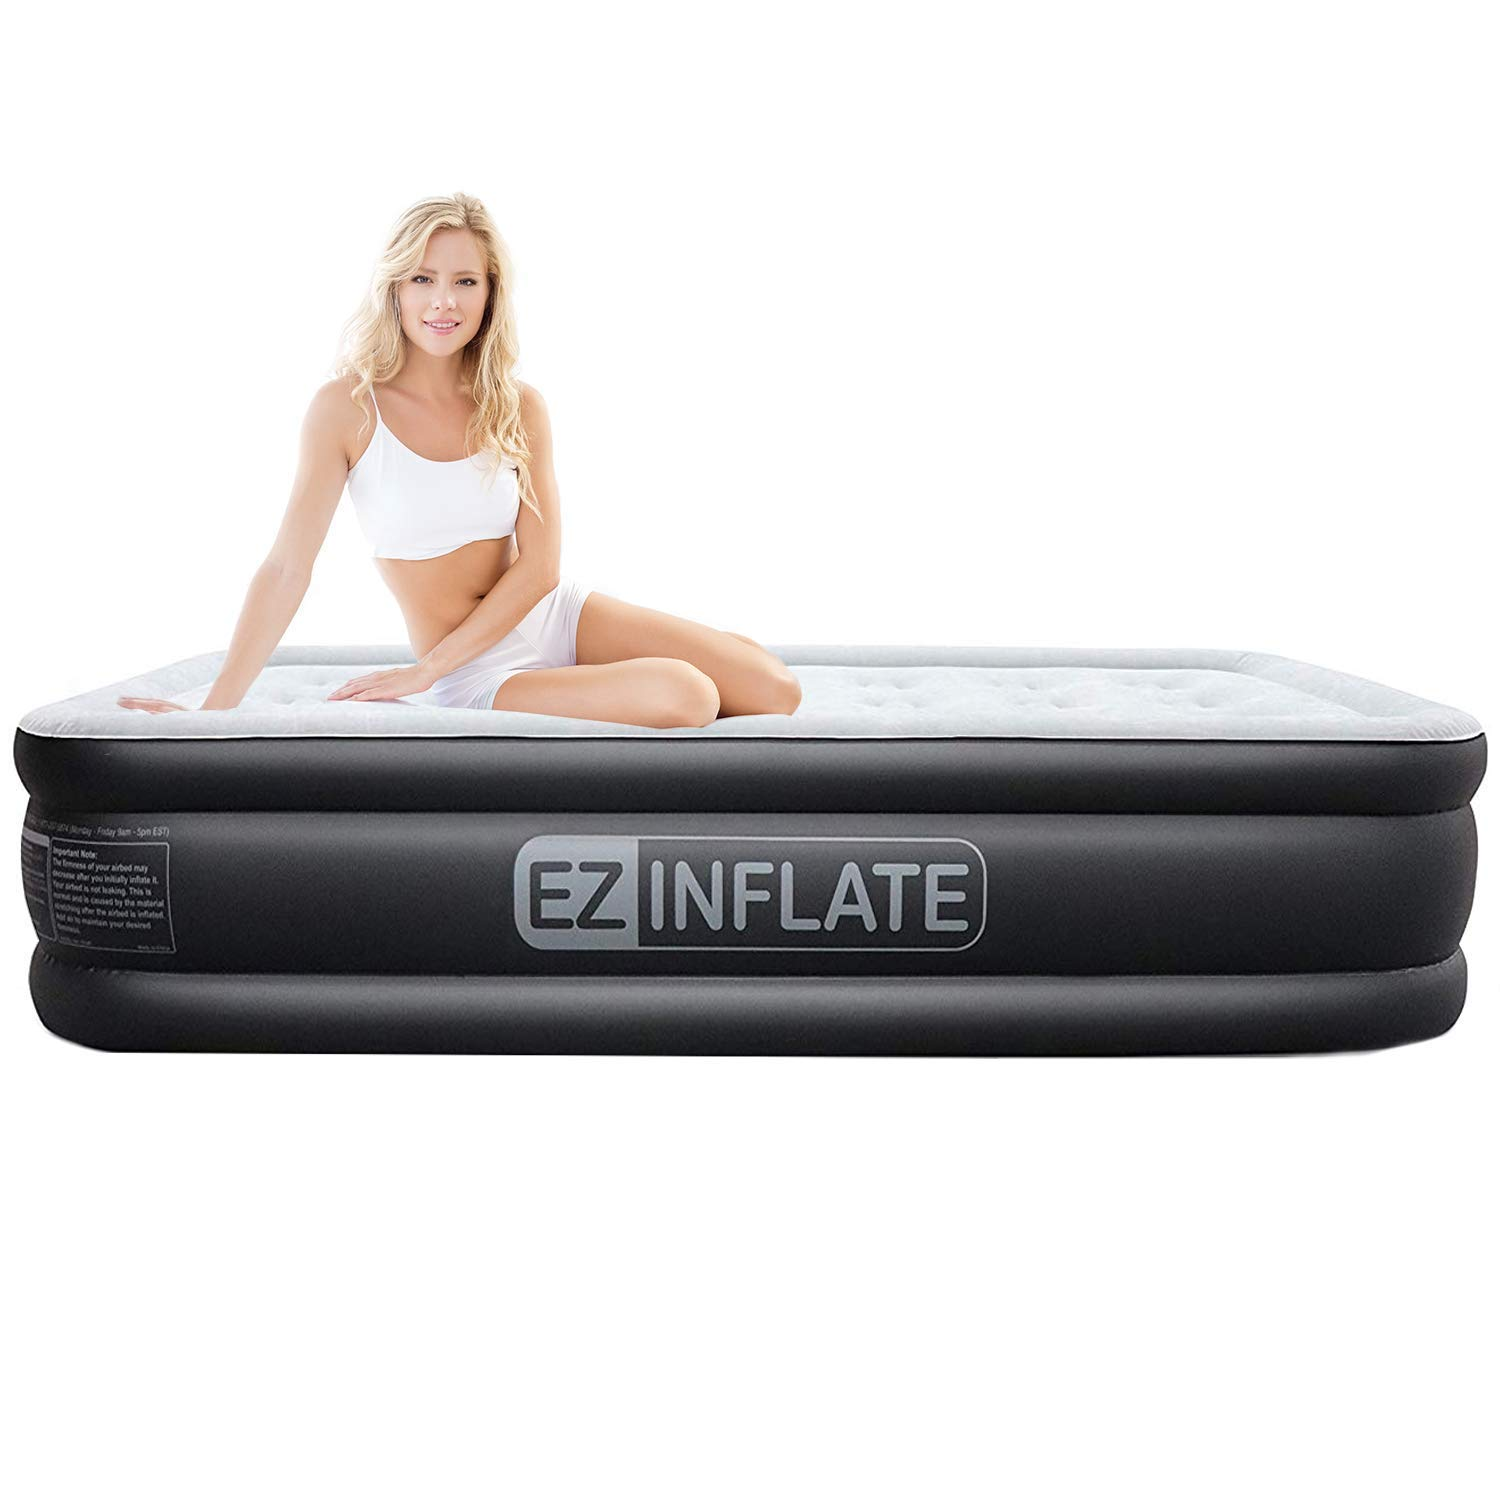 EZ INFLATE Dual Pump Technology Queen air Mattress with Built in Pump, Luxury Queen Size airbed, Inflatable Mattress for Home Camping Travel, Queen Blow up Bed, 2-Year Warranty by EZ INFLATE